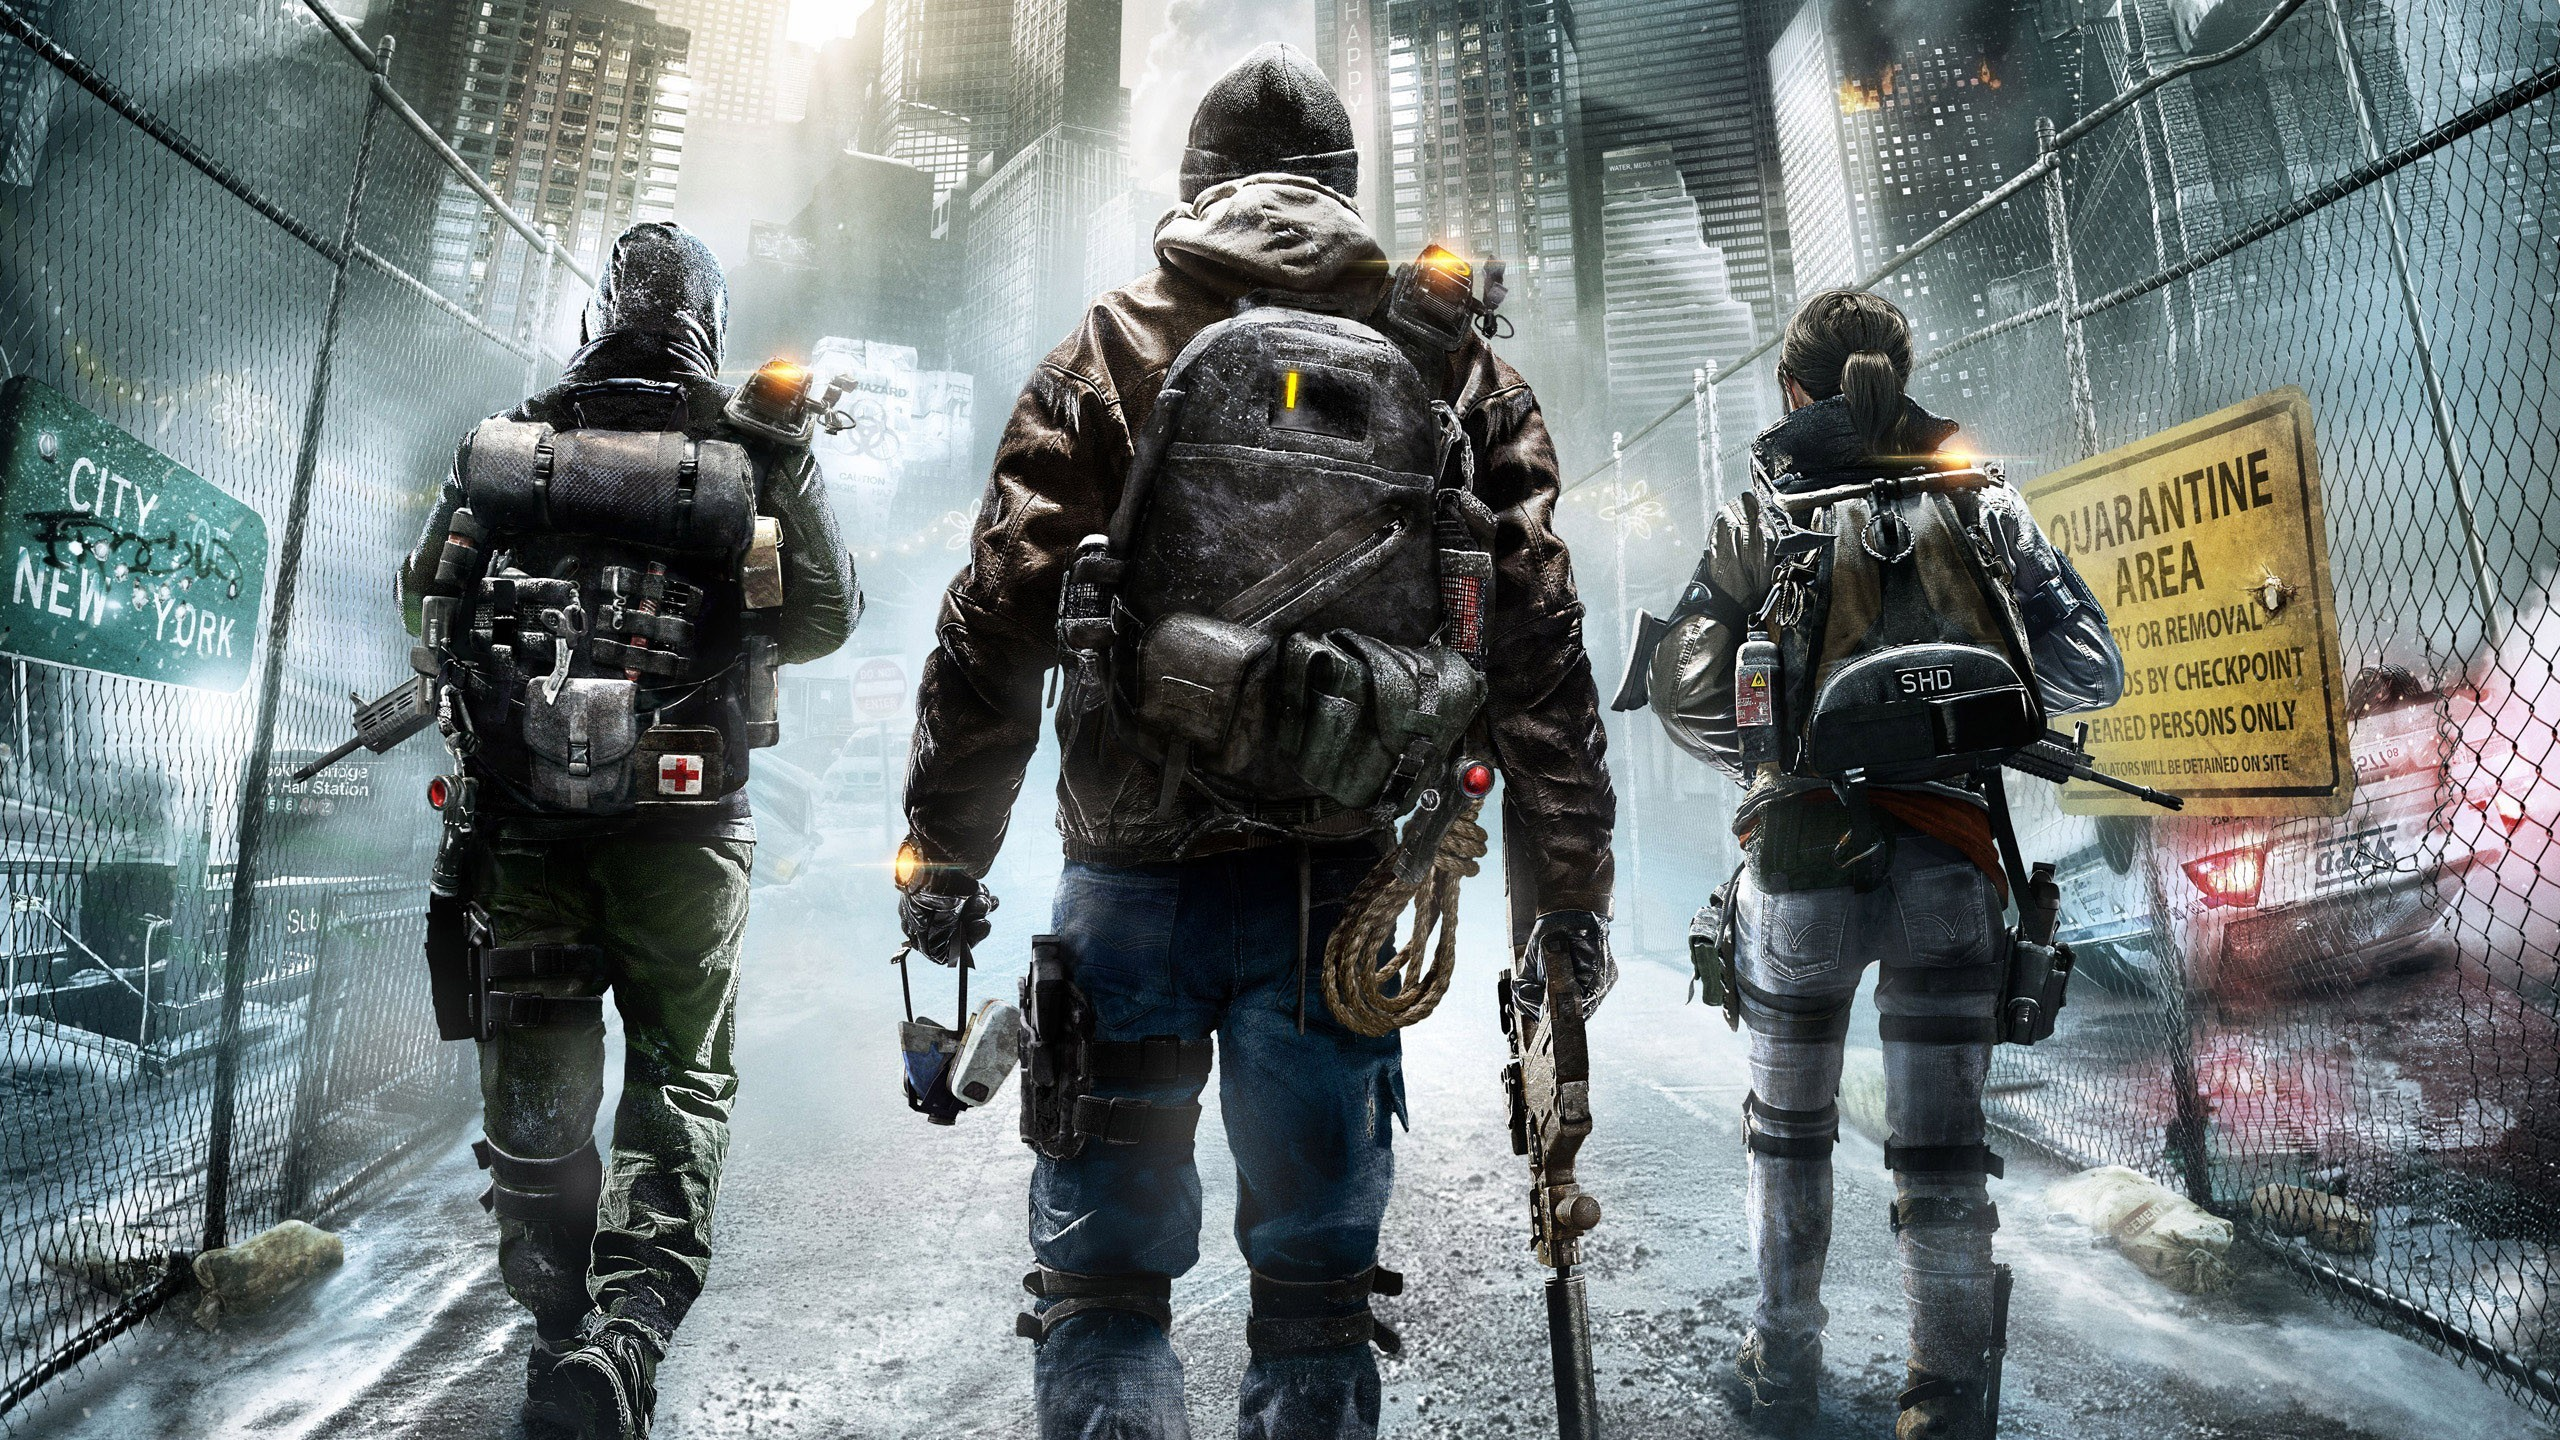 2560x1440 Tom Clancys The Division 2015 Game Desktop Wallpaper. November 27, 2014. in   Wallpapers ...